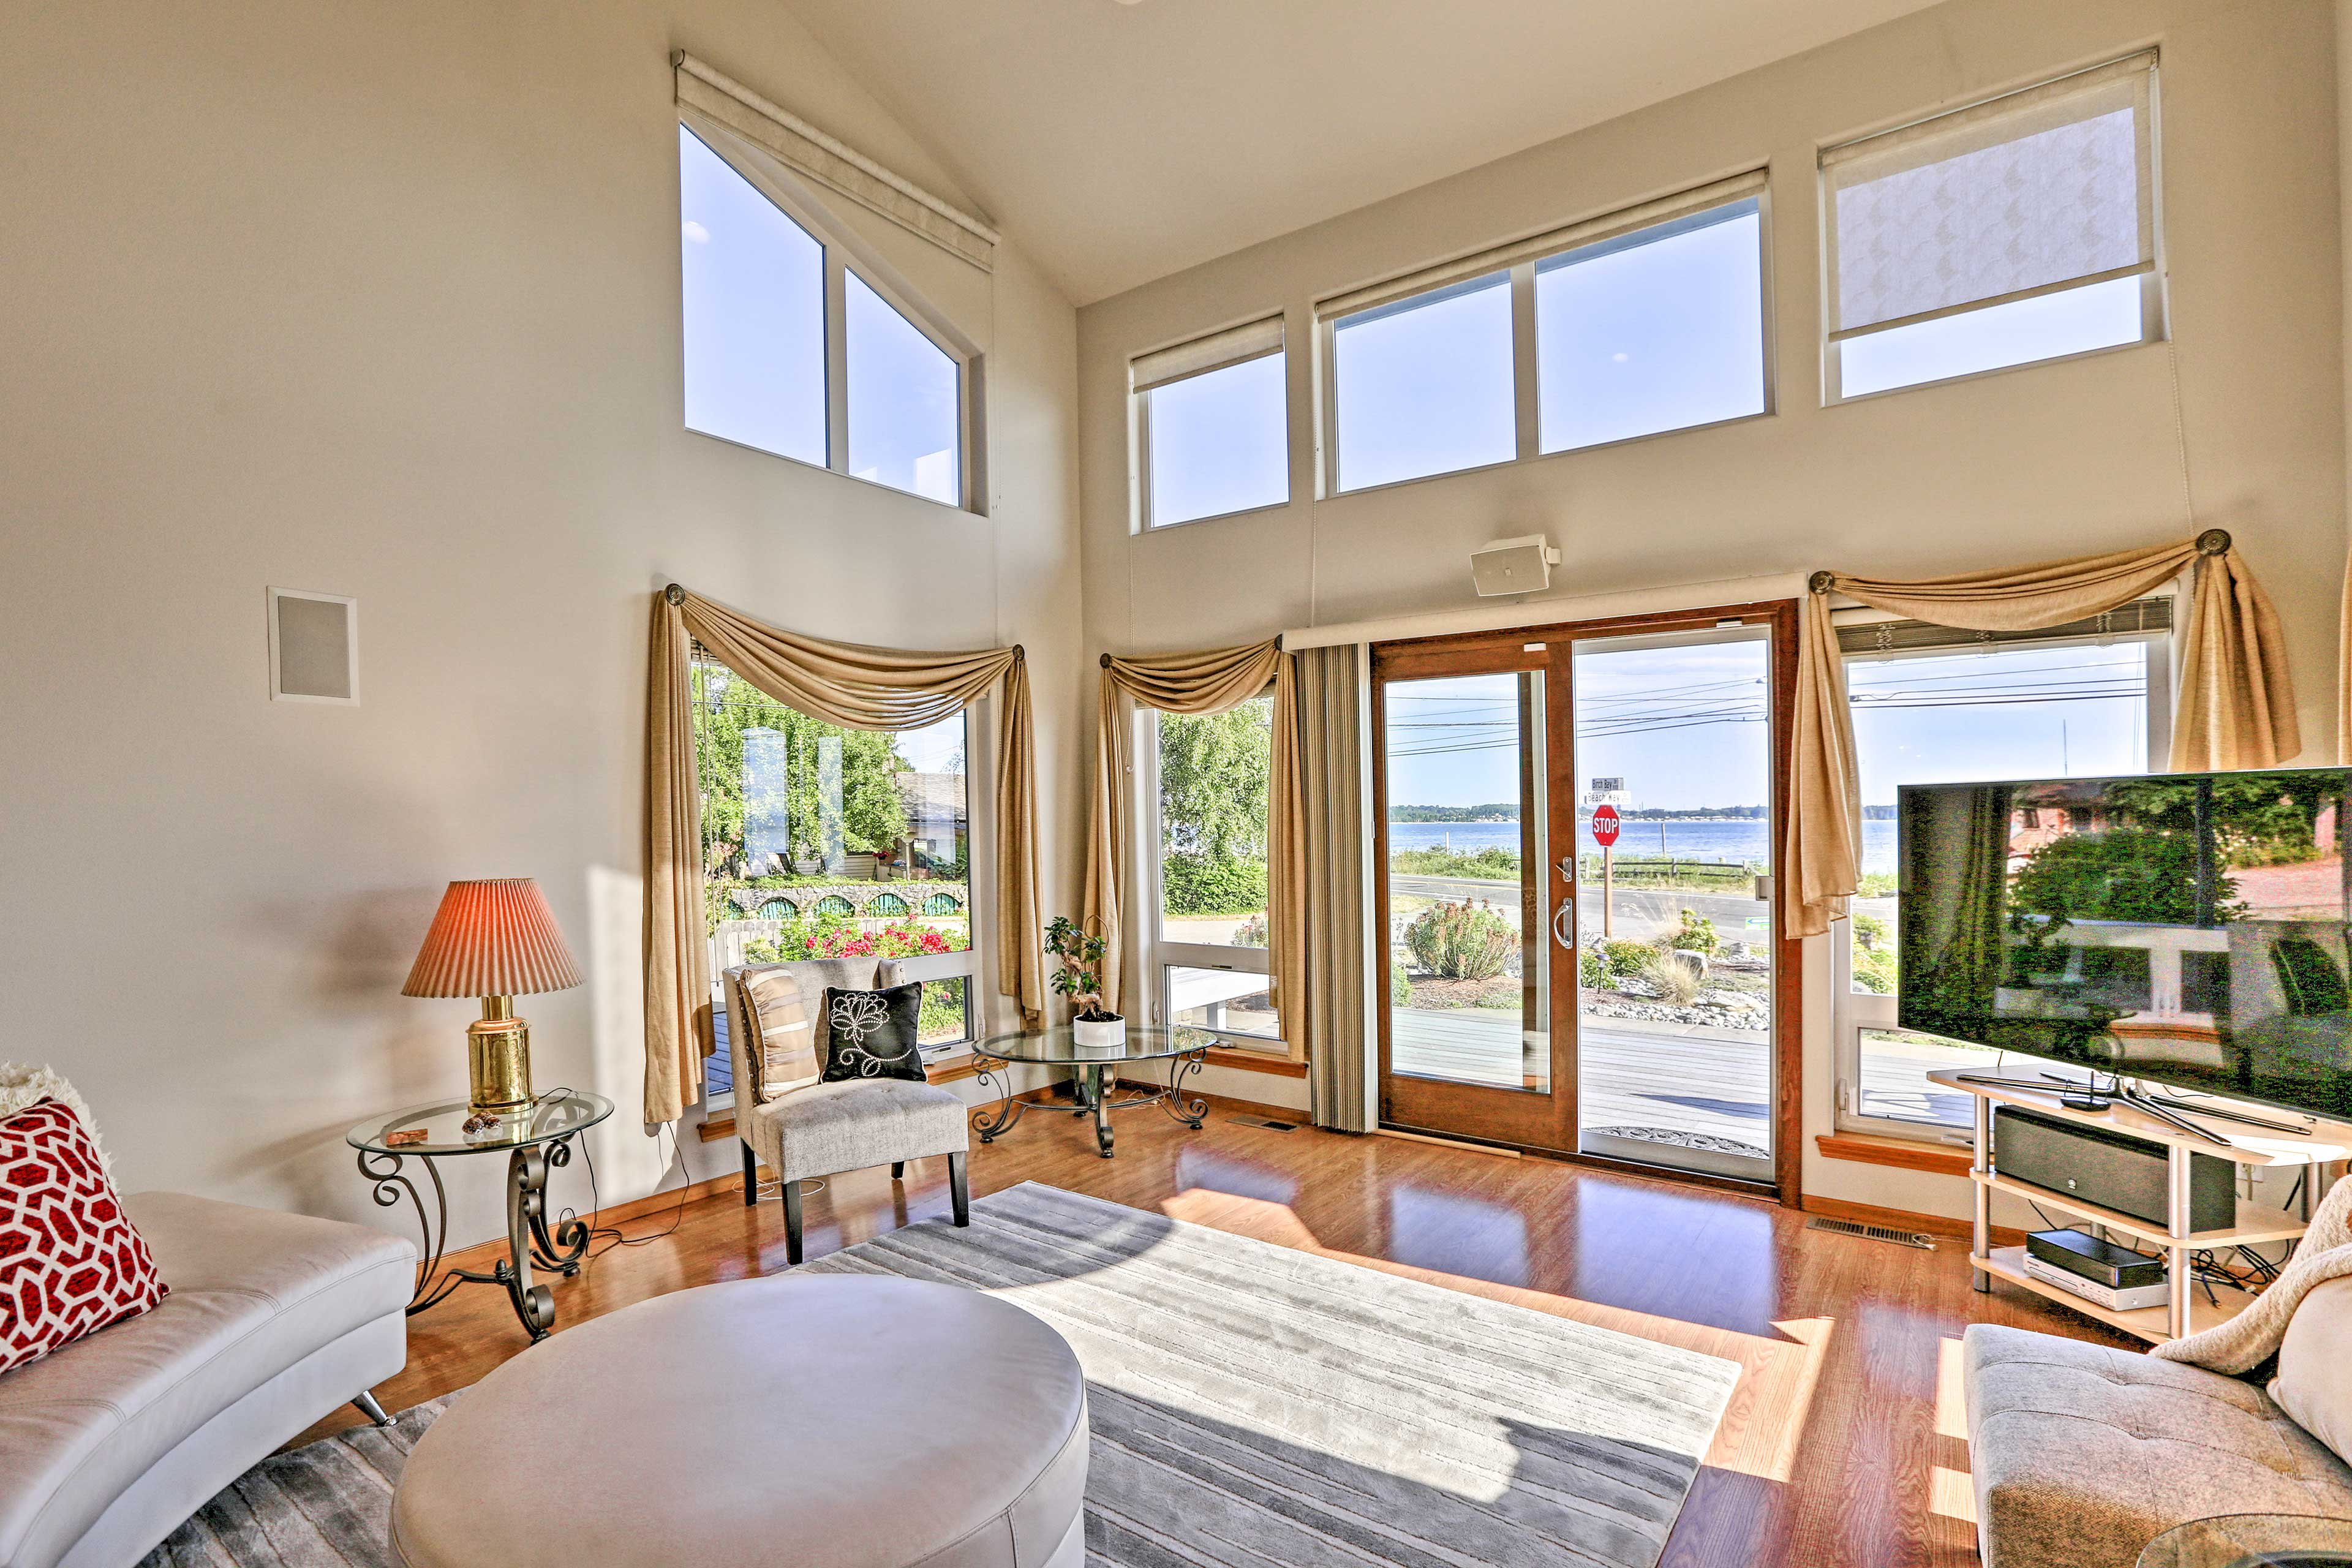 High ceilings and large windows bring natural light to the space.